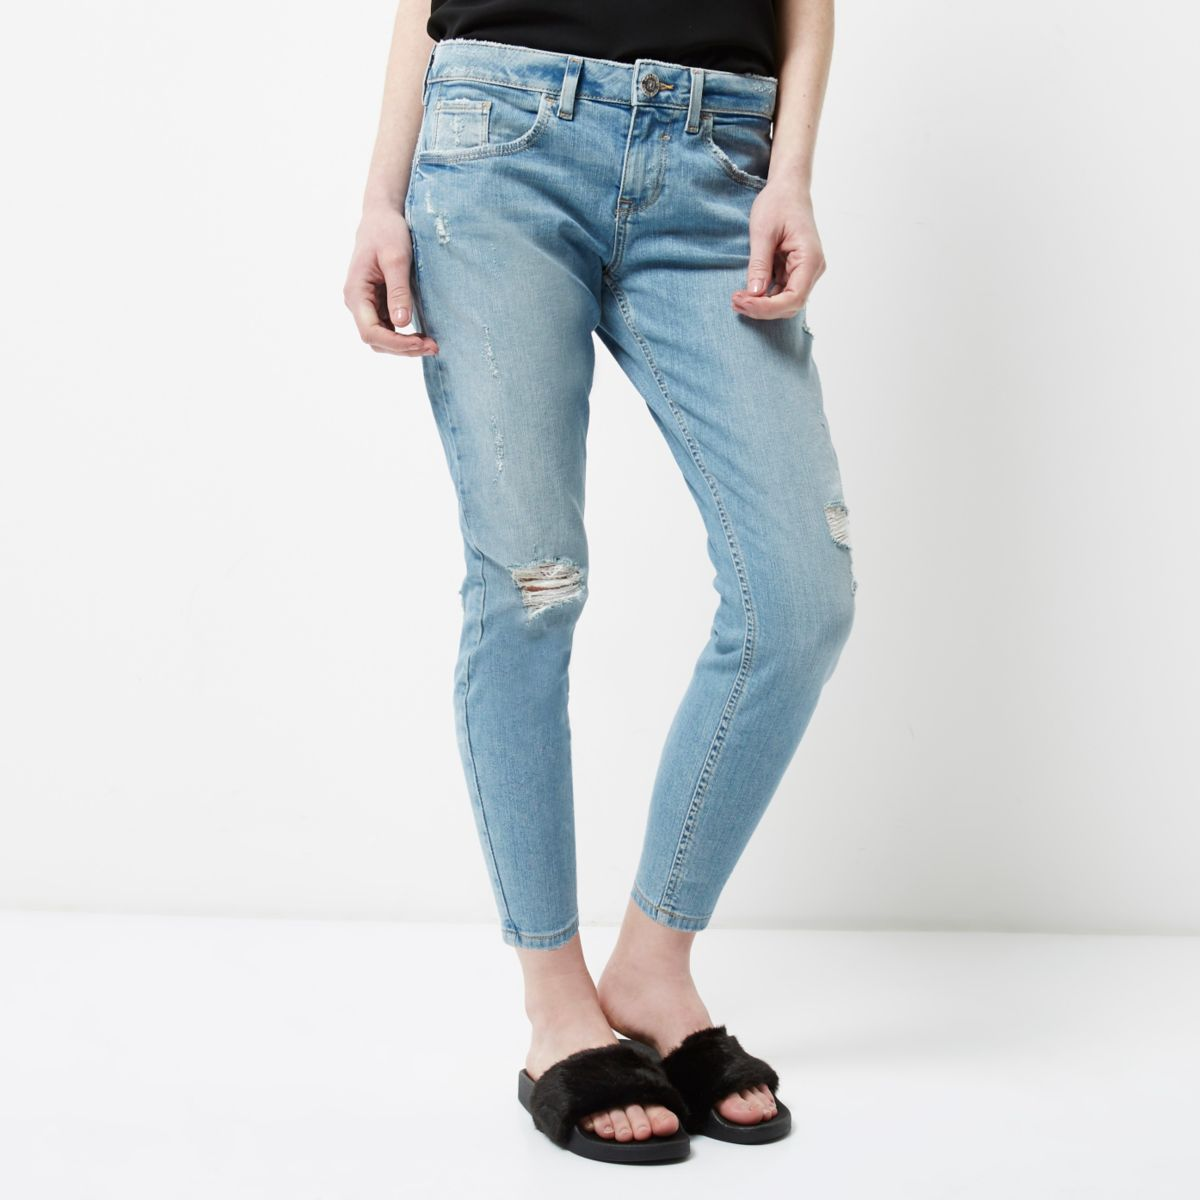 RI Petite - Alannah - Blauwe ripped relaxte skinny jeans